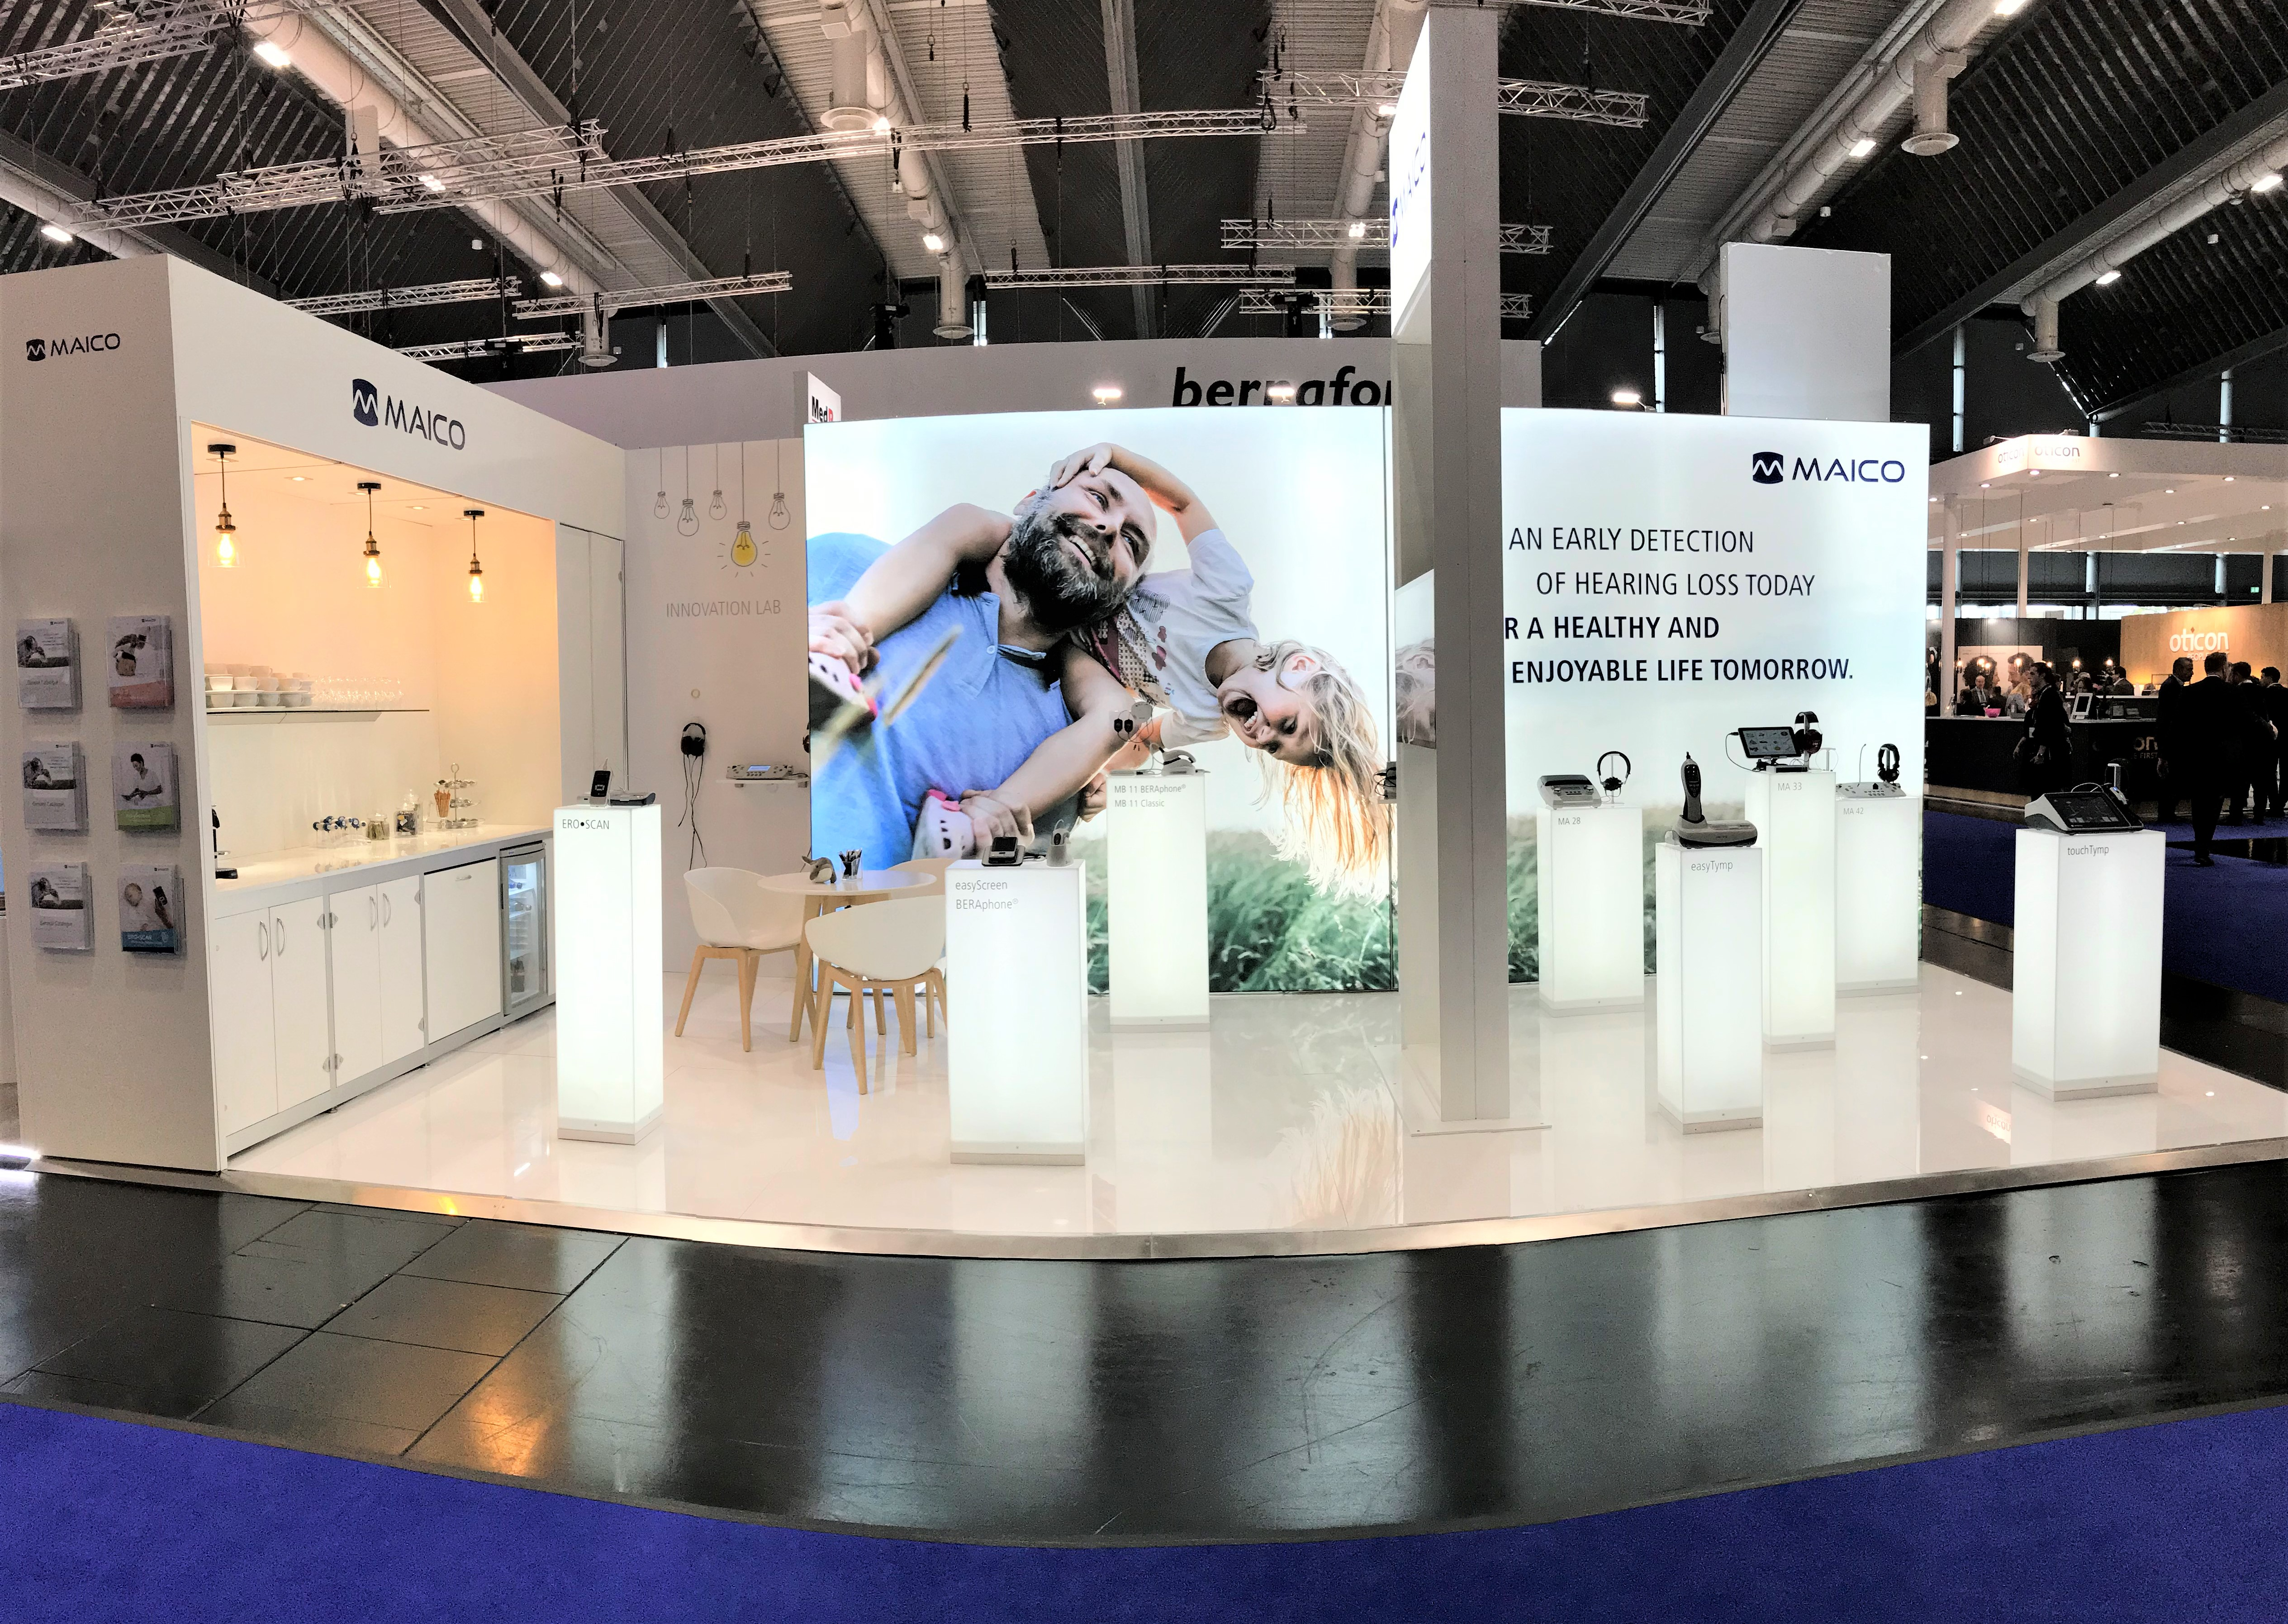 beautiful-maico-booth-at-euha-2019-in-nuremberg-germany